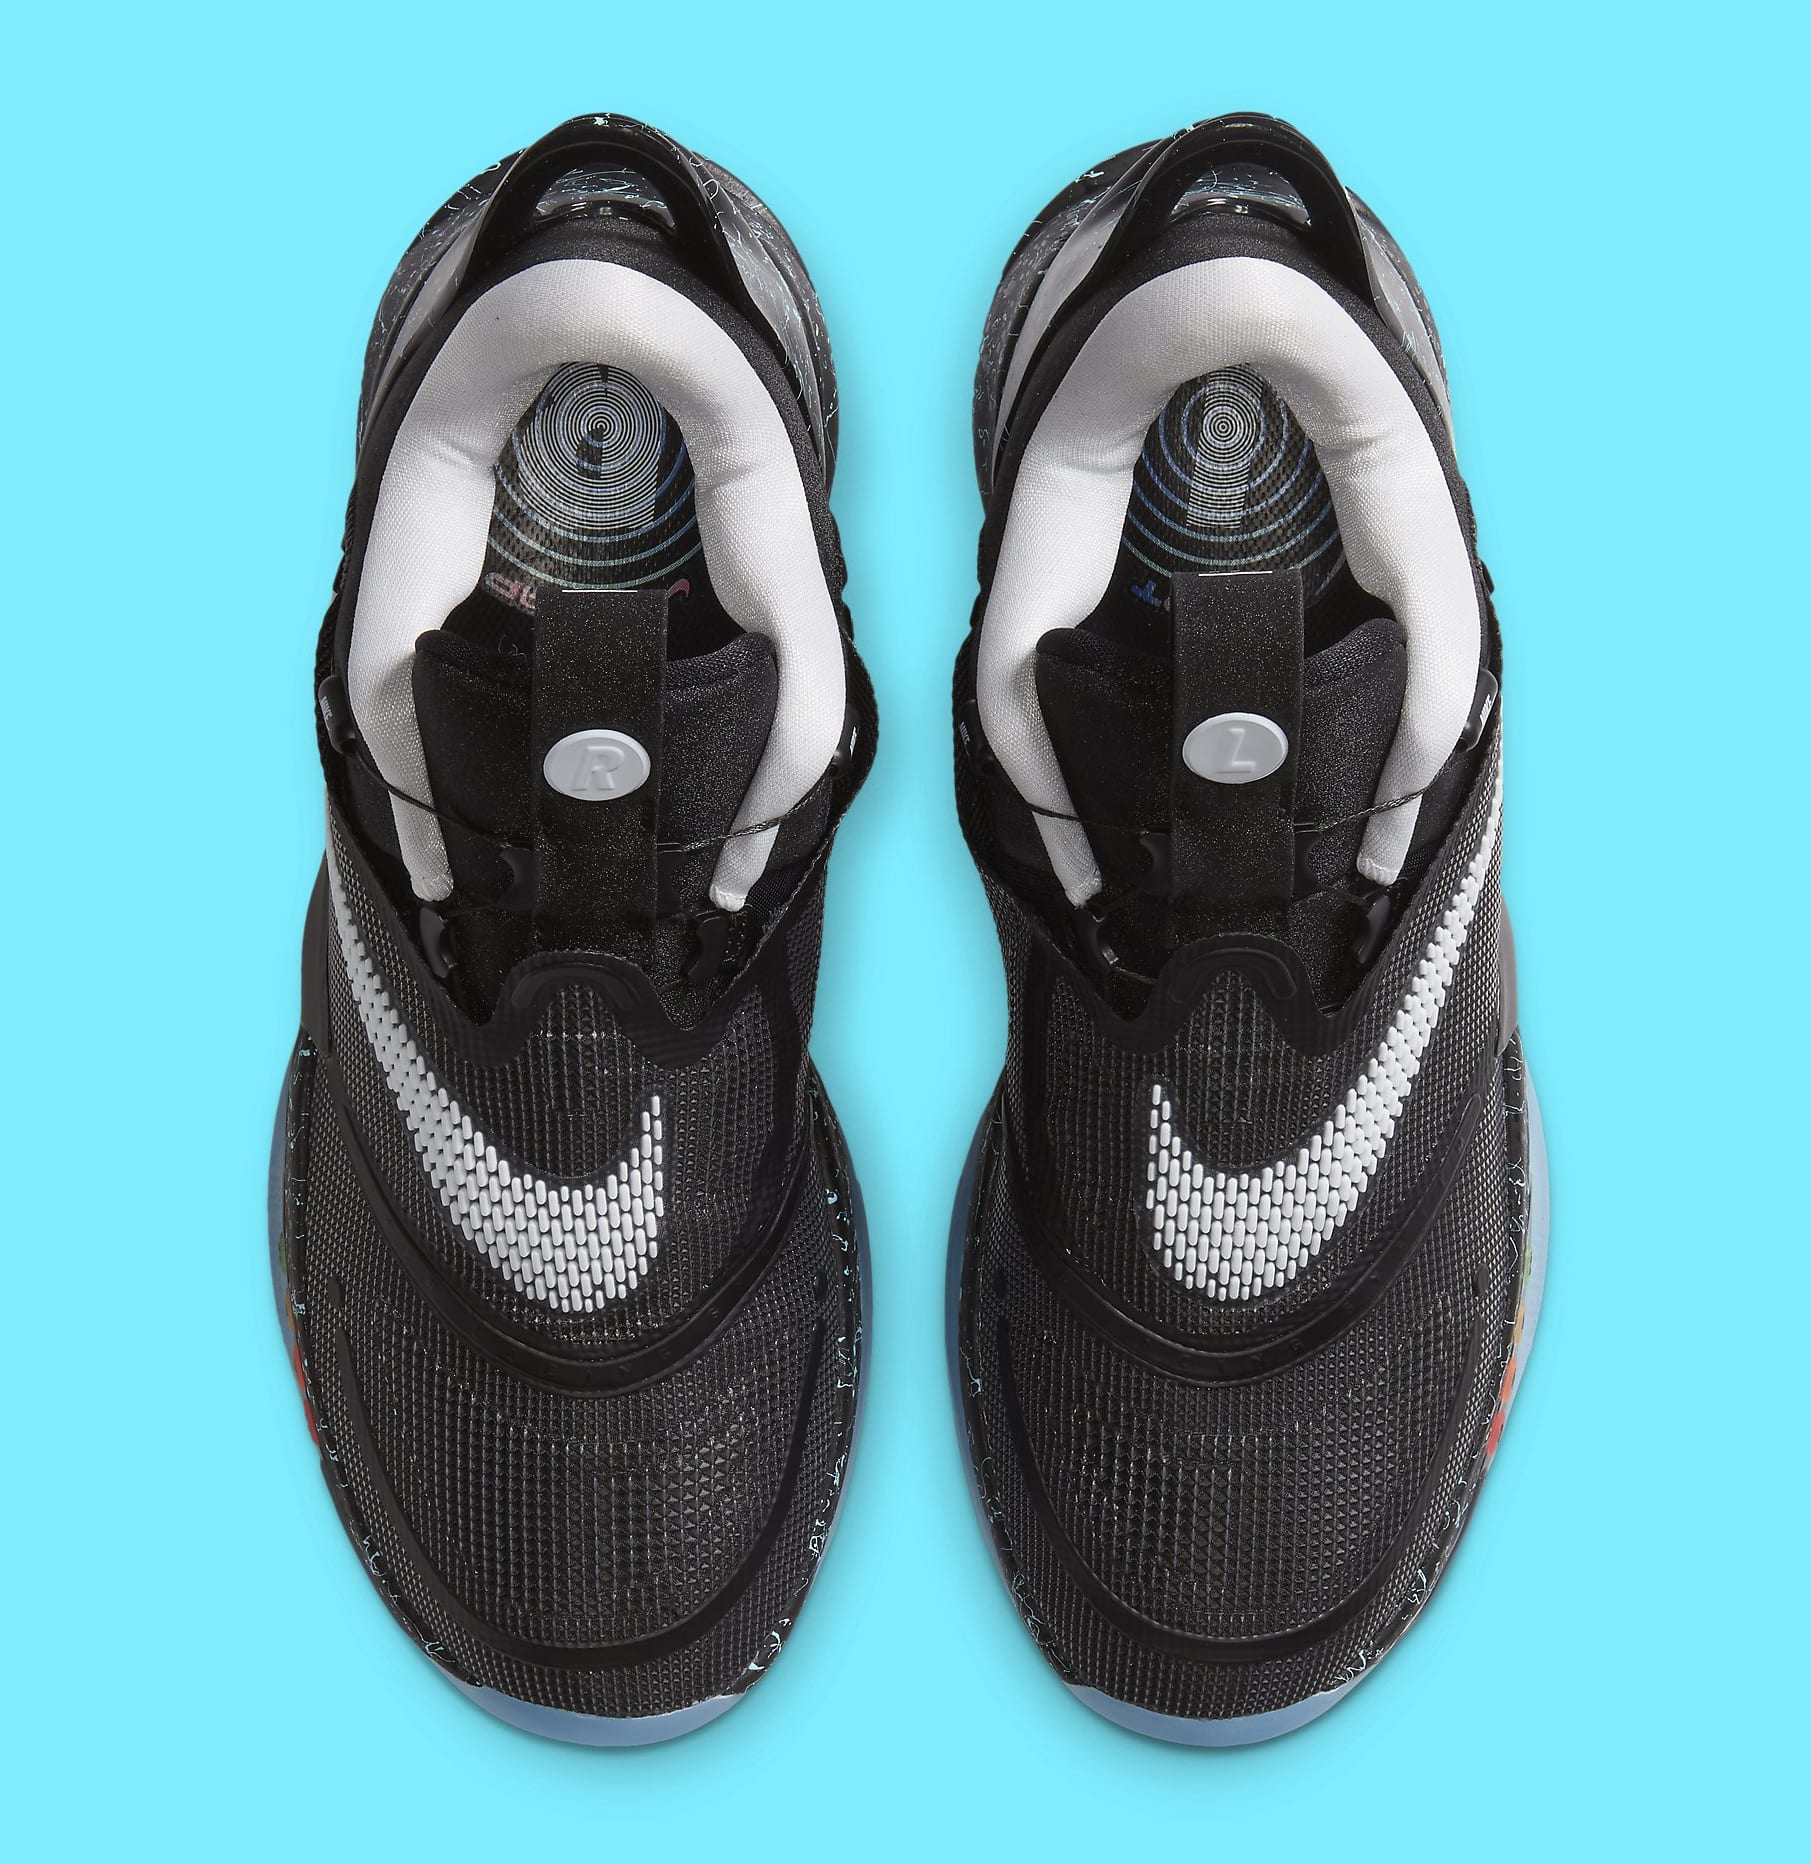 Nike Adapt Bb 2 0 Mag Release Date Cv2441 002 Bq5397 003 Sole Collector